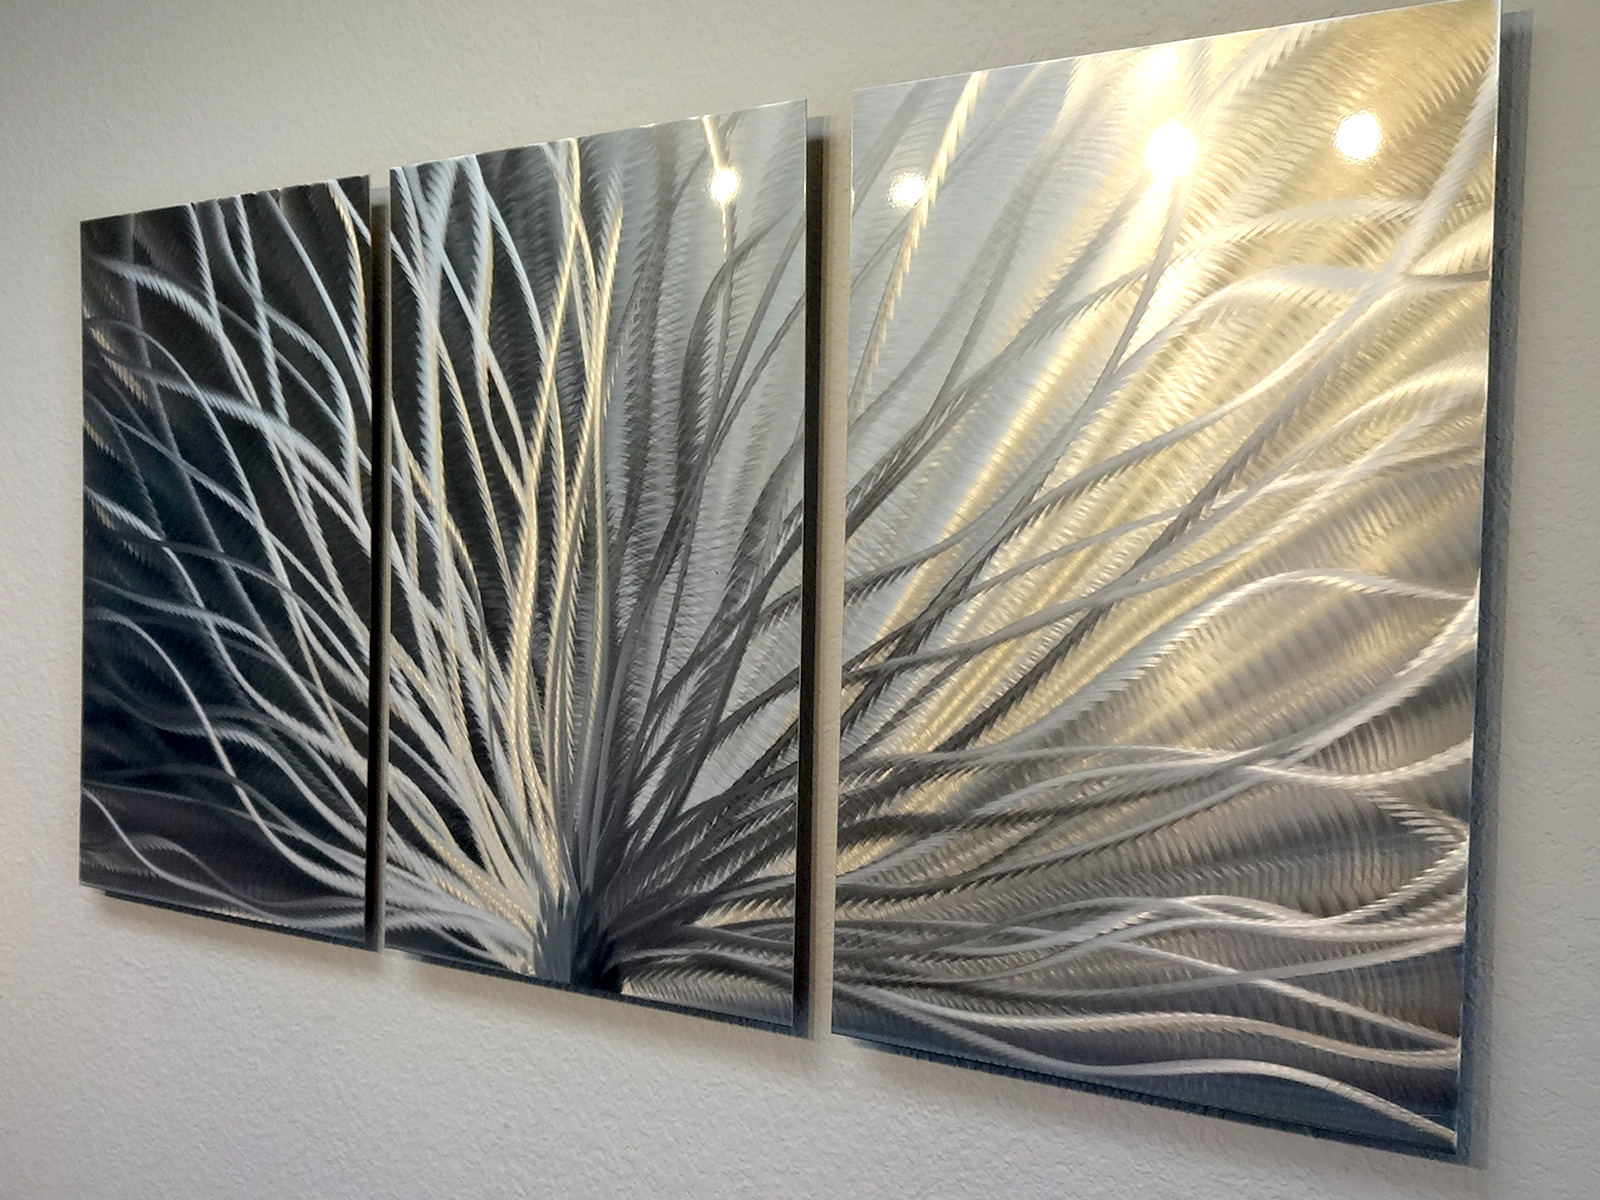 Wall Art Metal Panels : Radiance panel metal wall art abstract contemporary